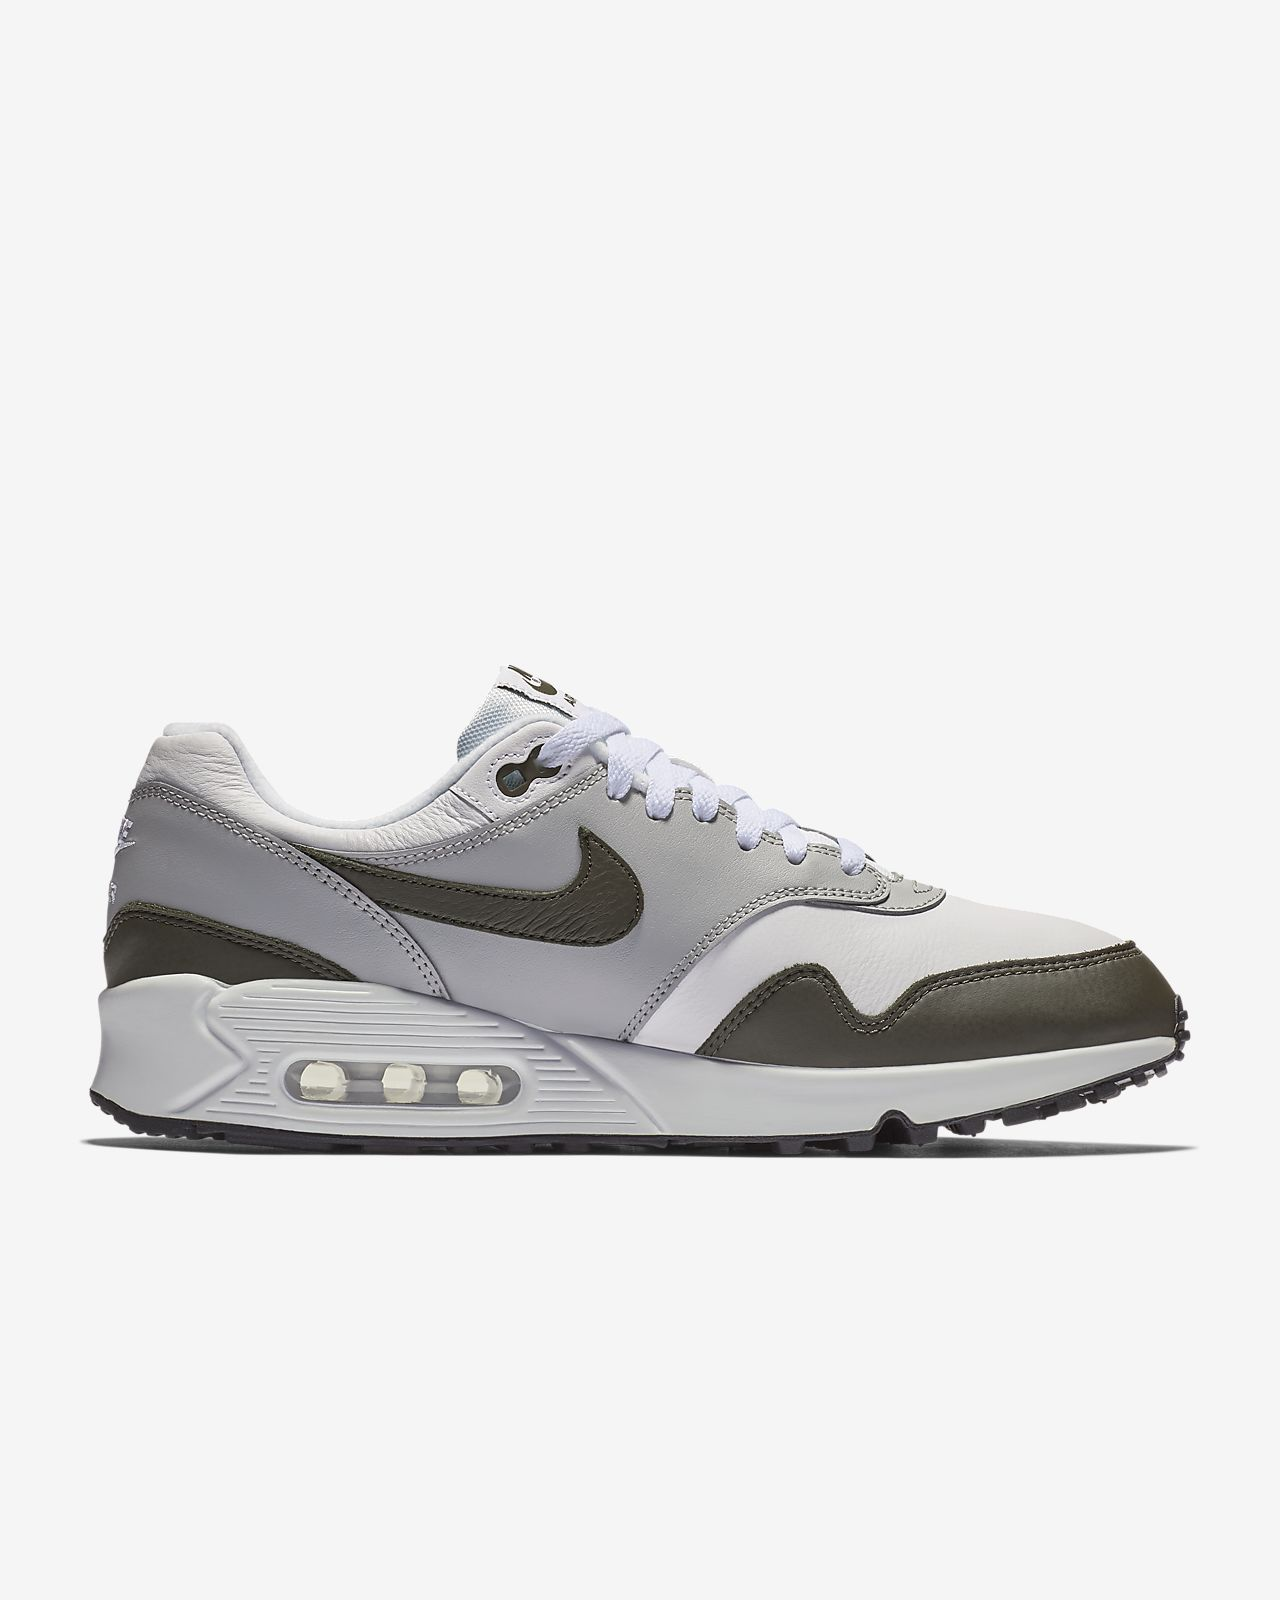 competitive price f38f3 9d8d1 ... Nike Air Max 90 1 Men s Shoe